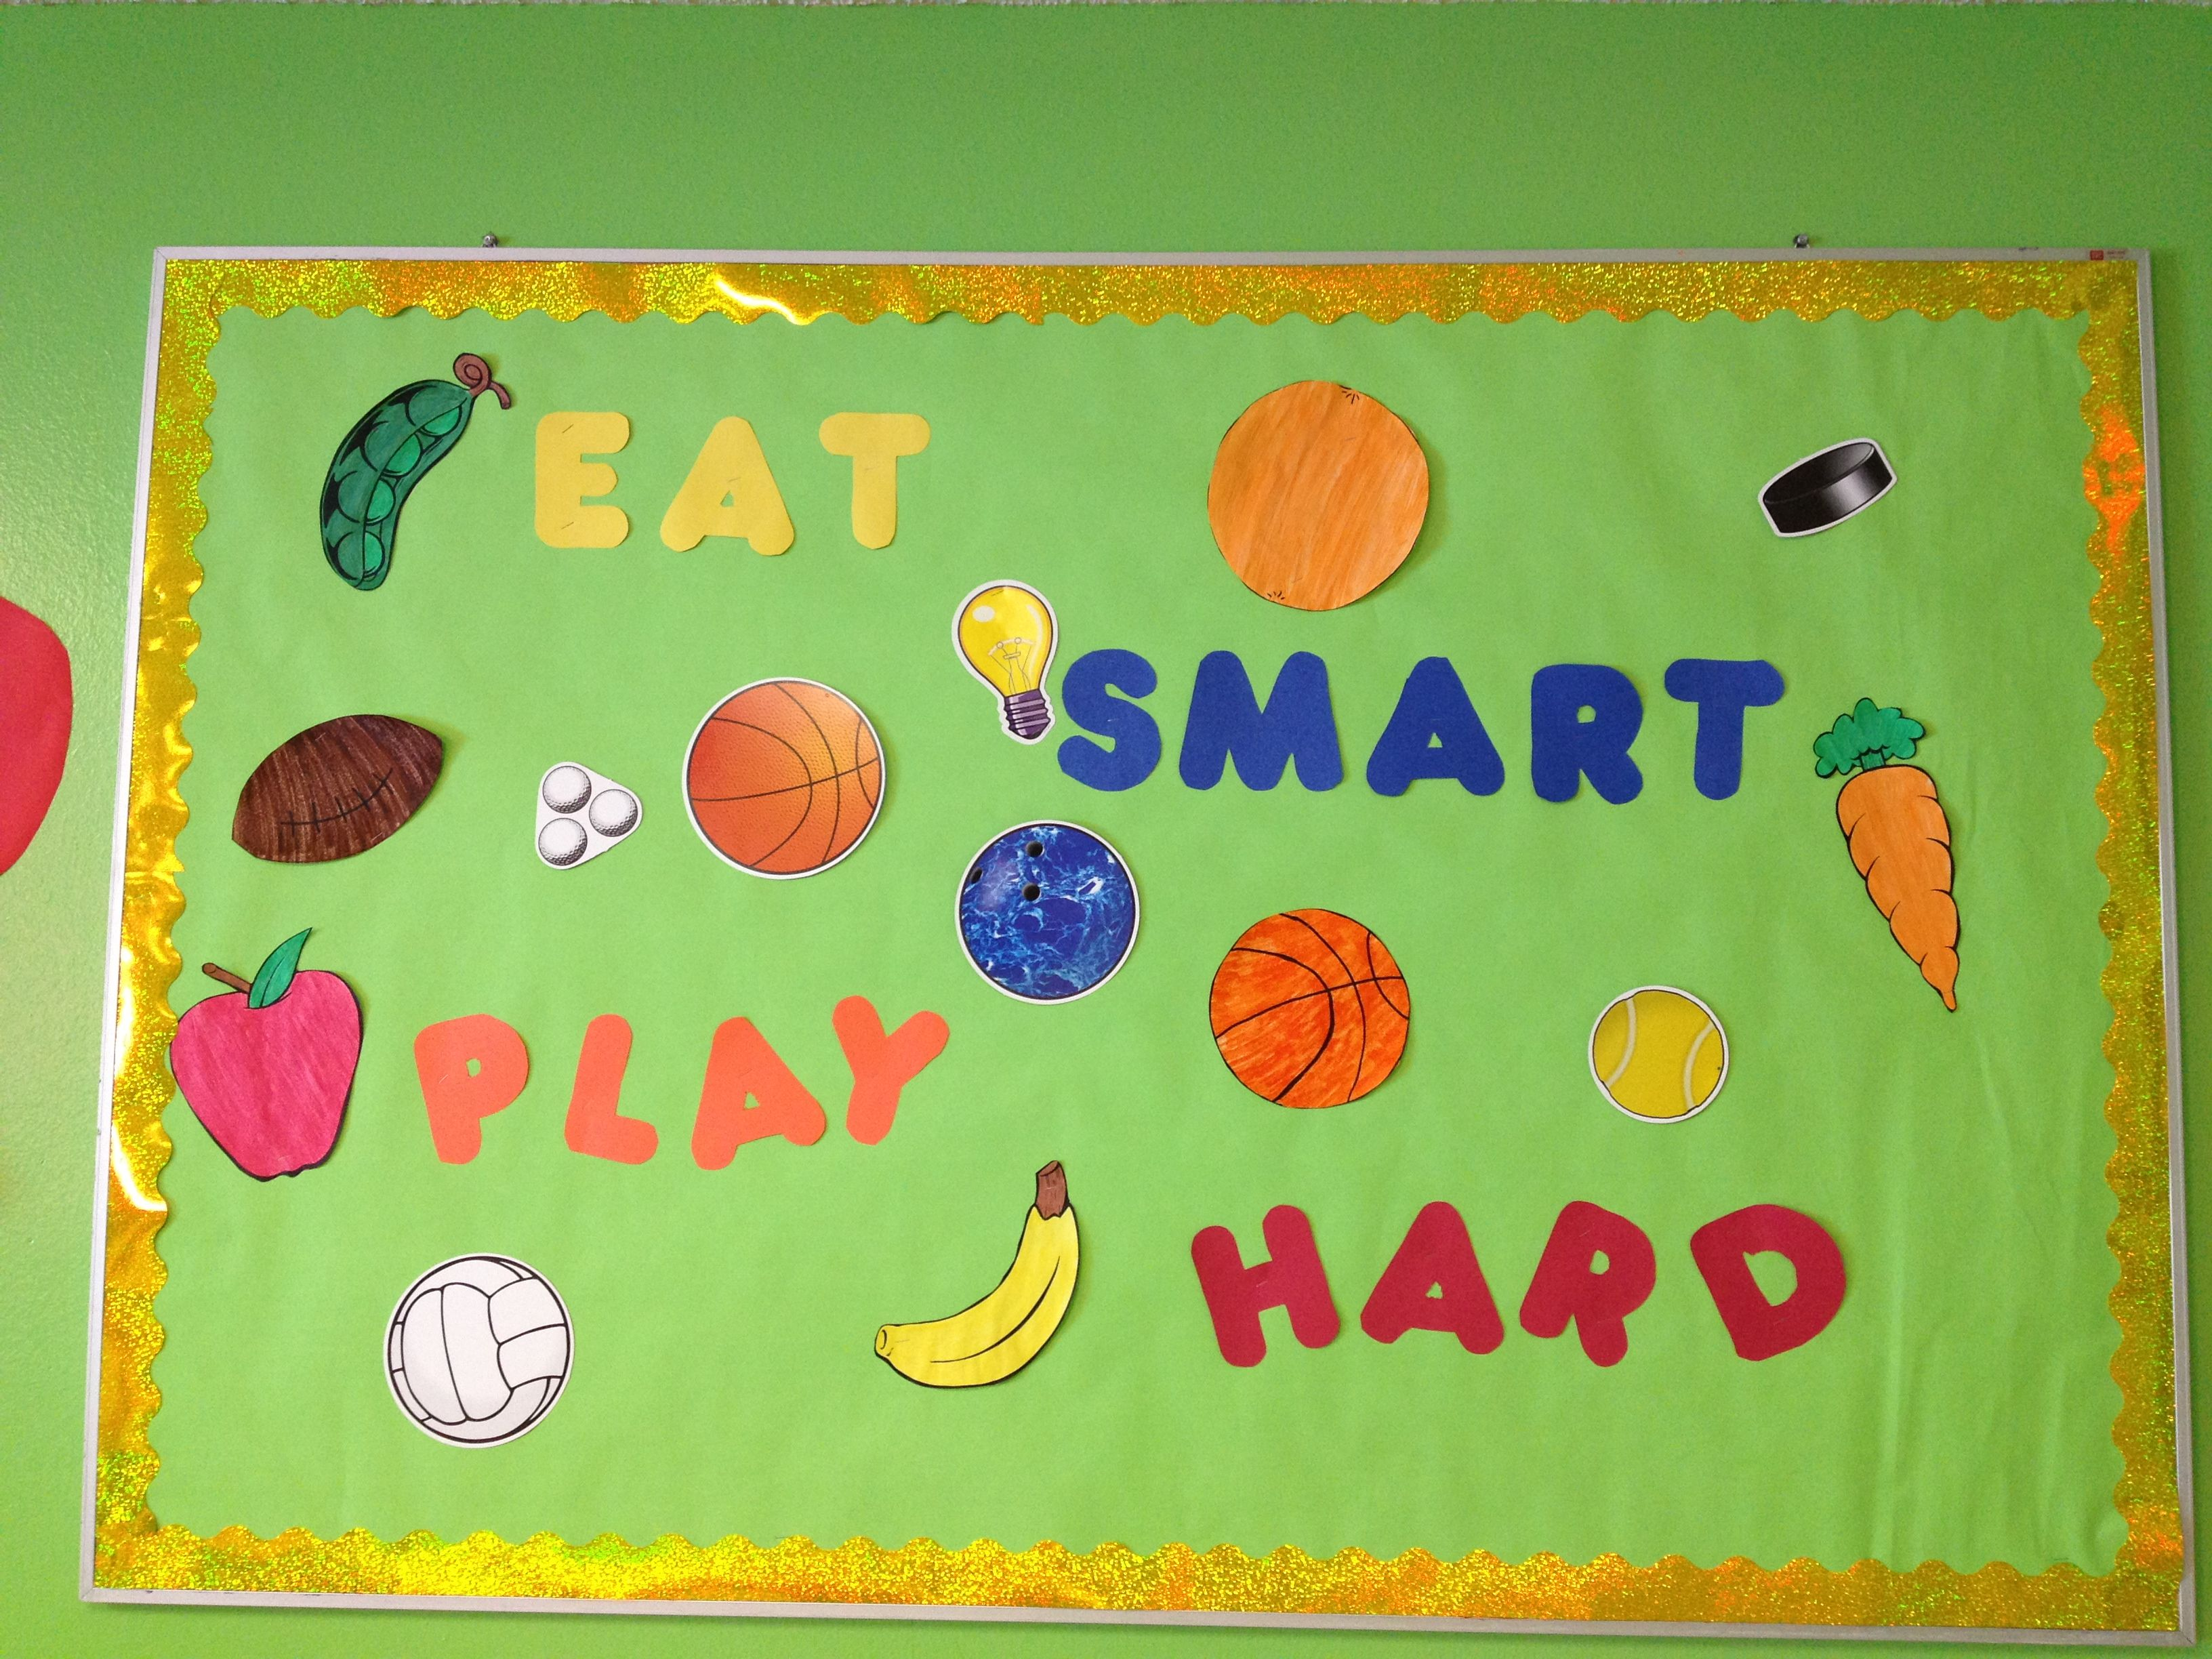 Art craft ideas and bulletin boards for elementary schools vegetable - Eat Smart Play Hard Bulletin Board Cni 187 Painted Fruits And Vegetables